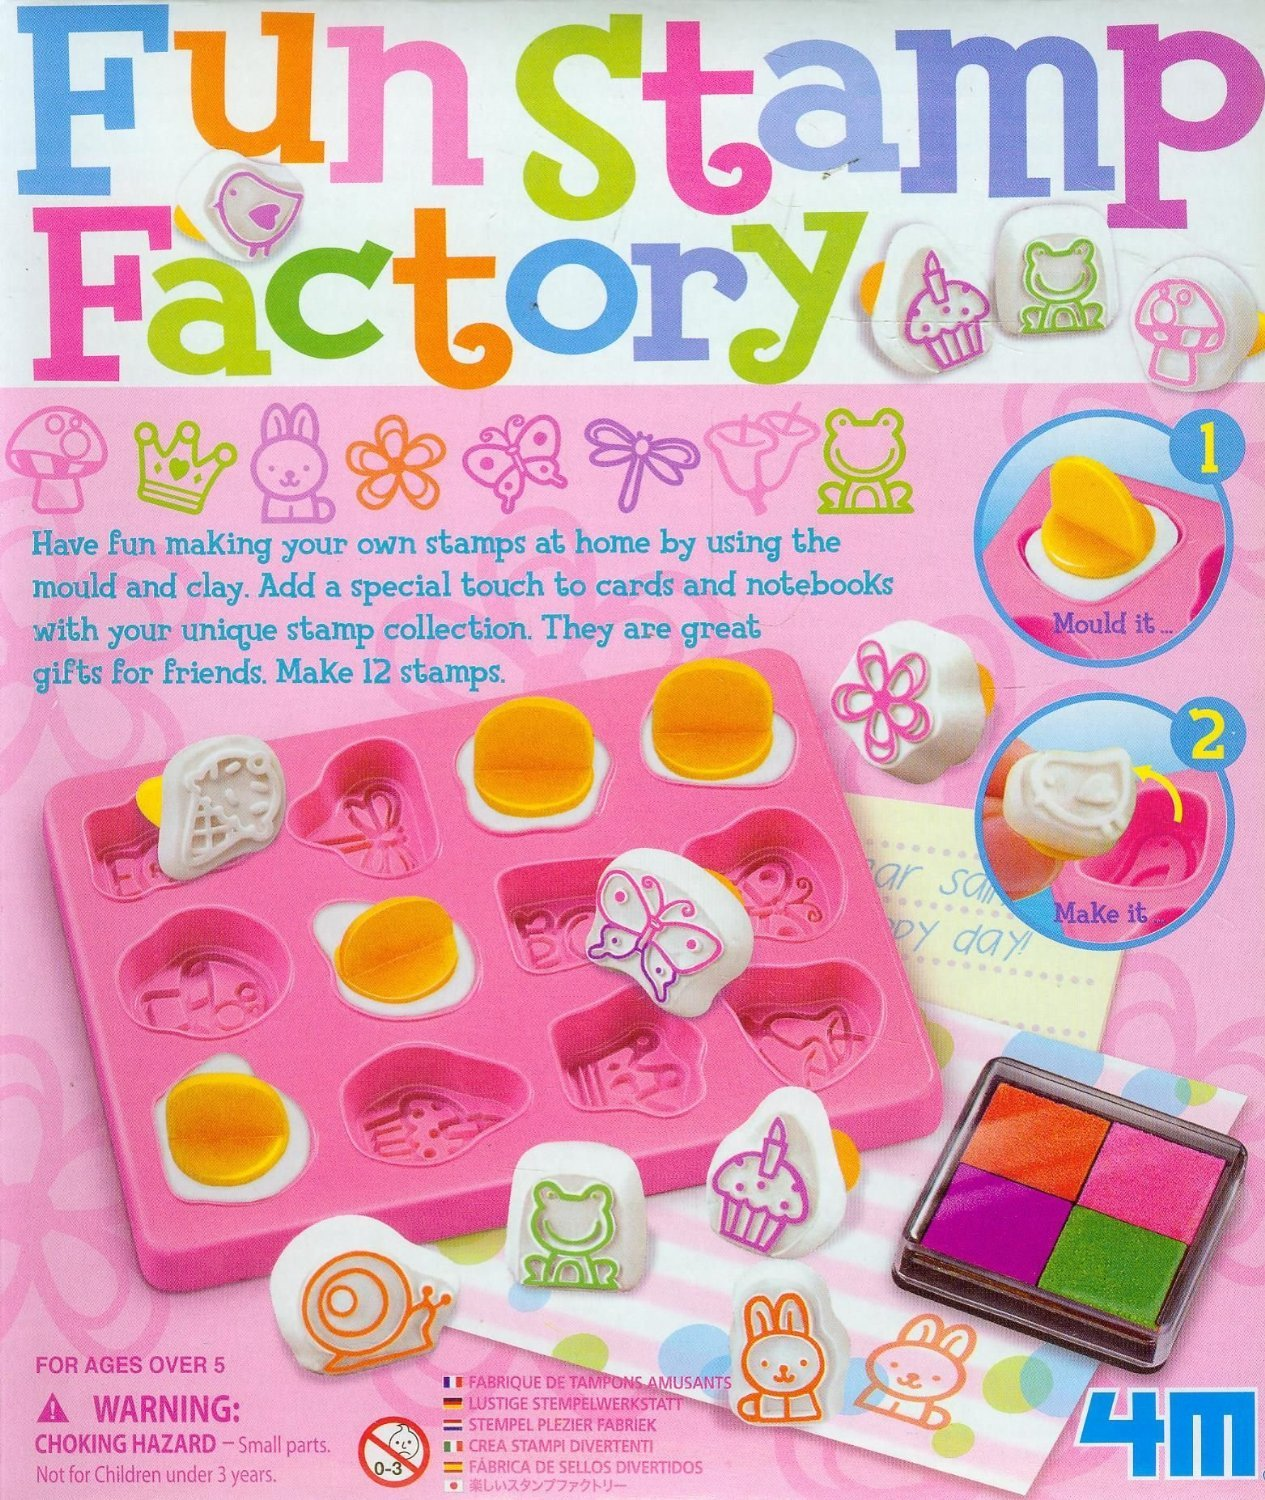 Jardines Online Warehouse Fun little project - No 1 Selling Boys & Girls Gift Idea For Christmas or Birthday Age 5+ Fun Stamp Making Kit